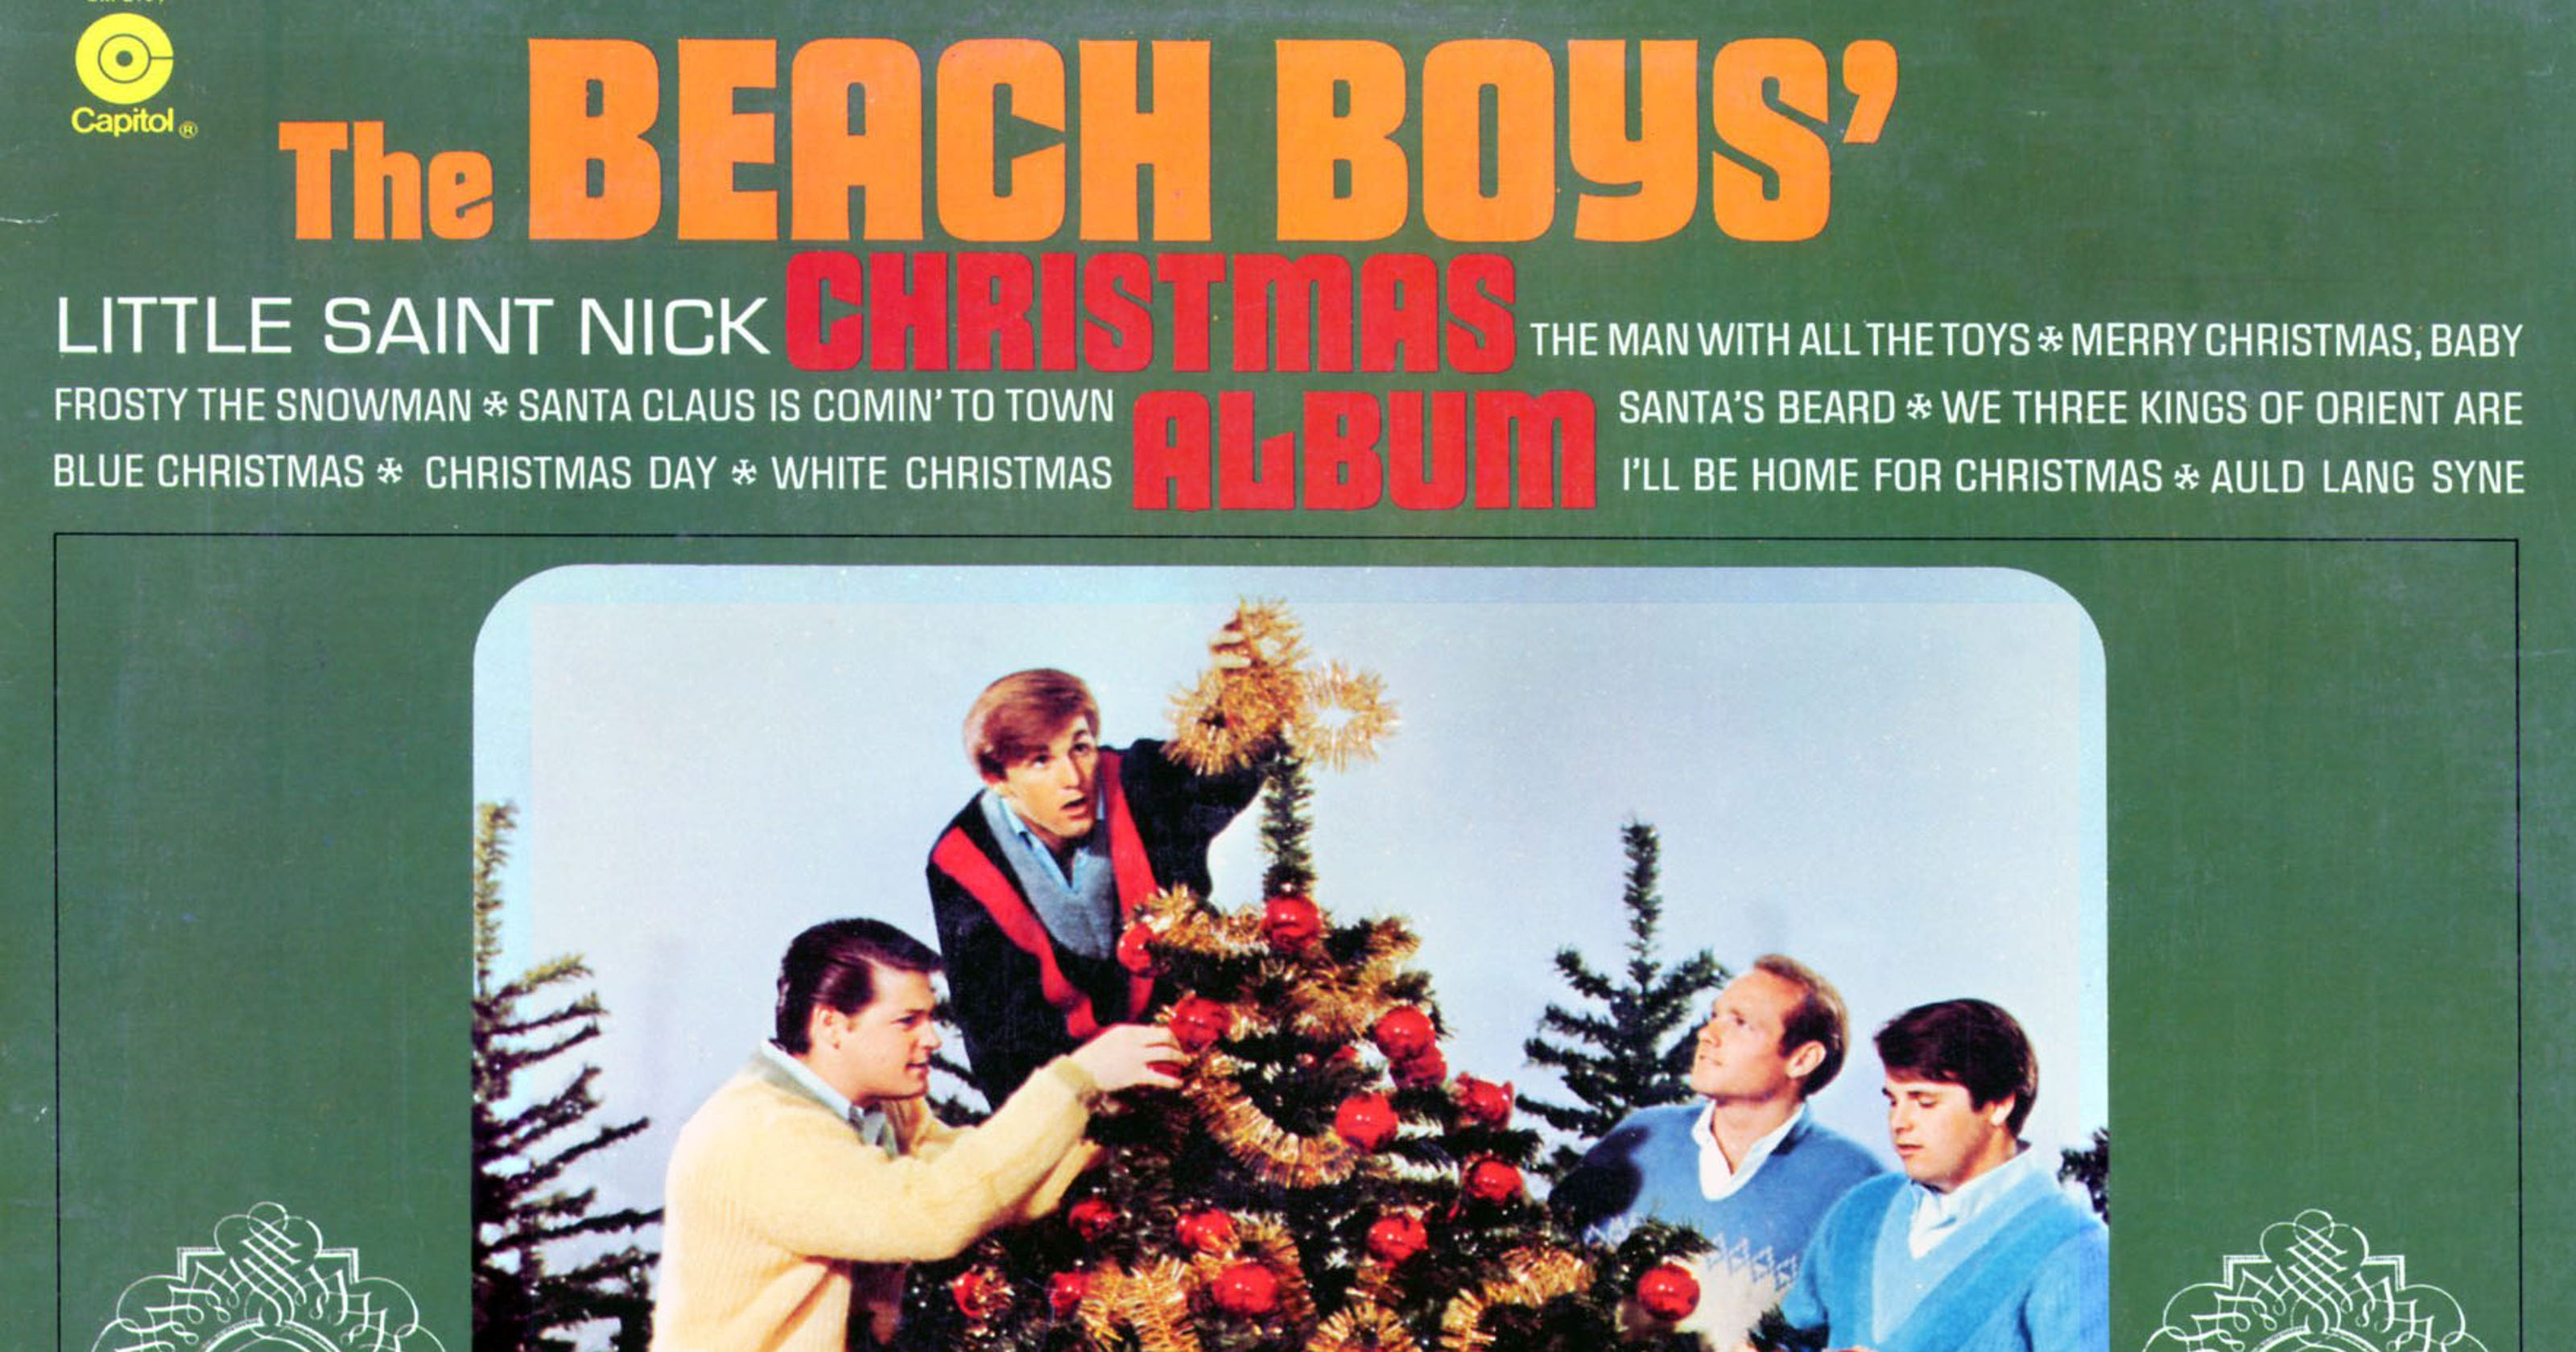 30 Great Songs For A Rock And Roll Christmas